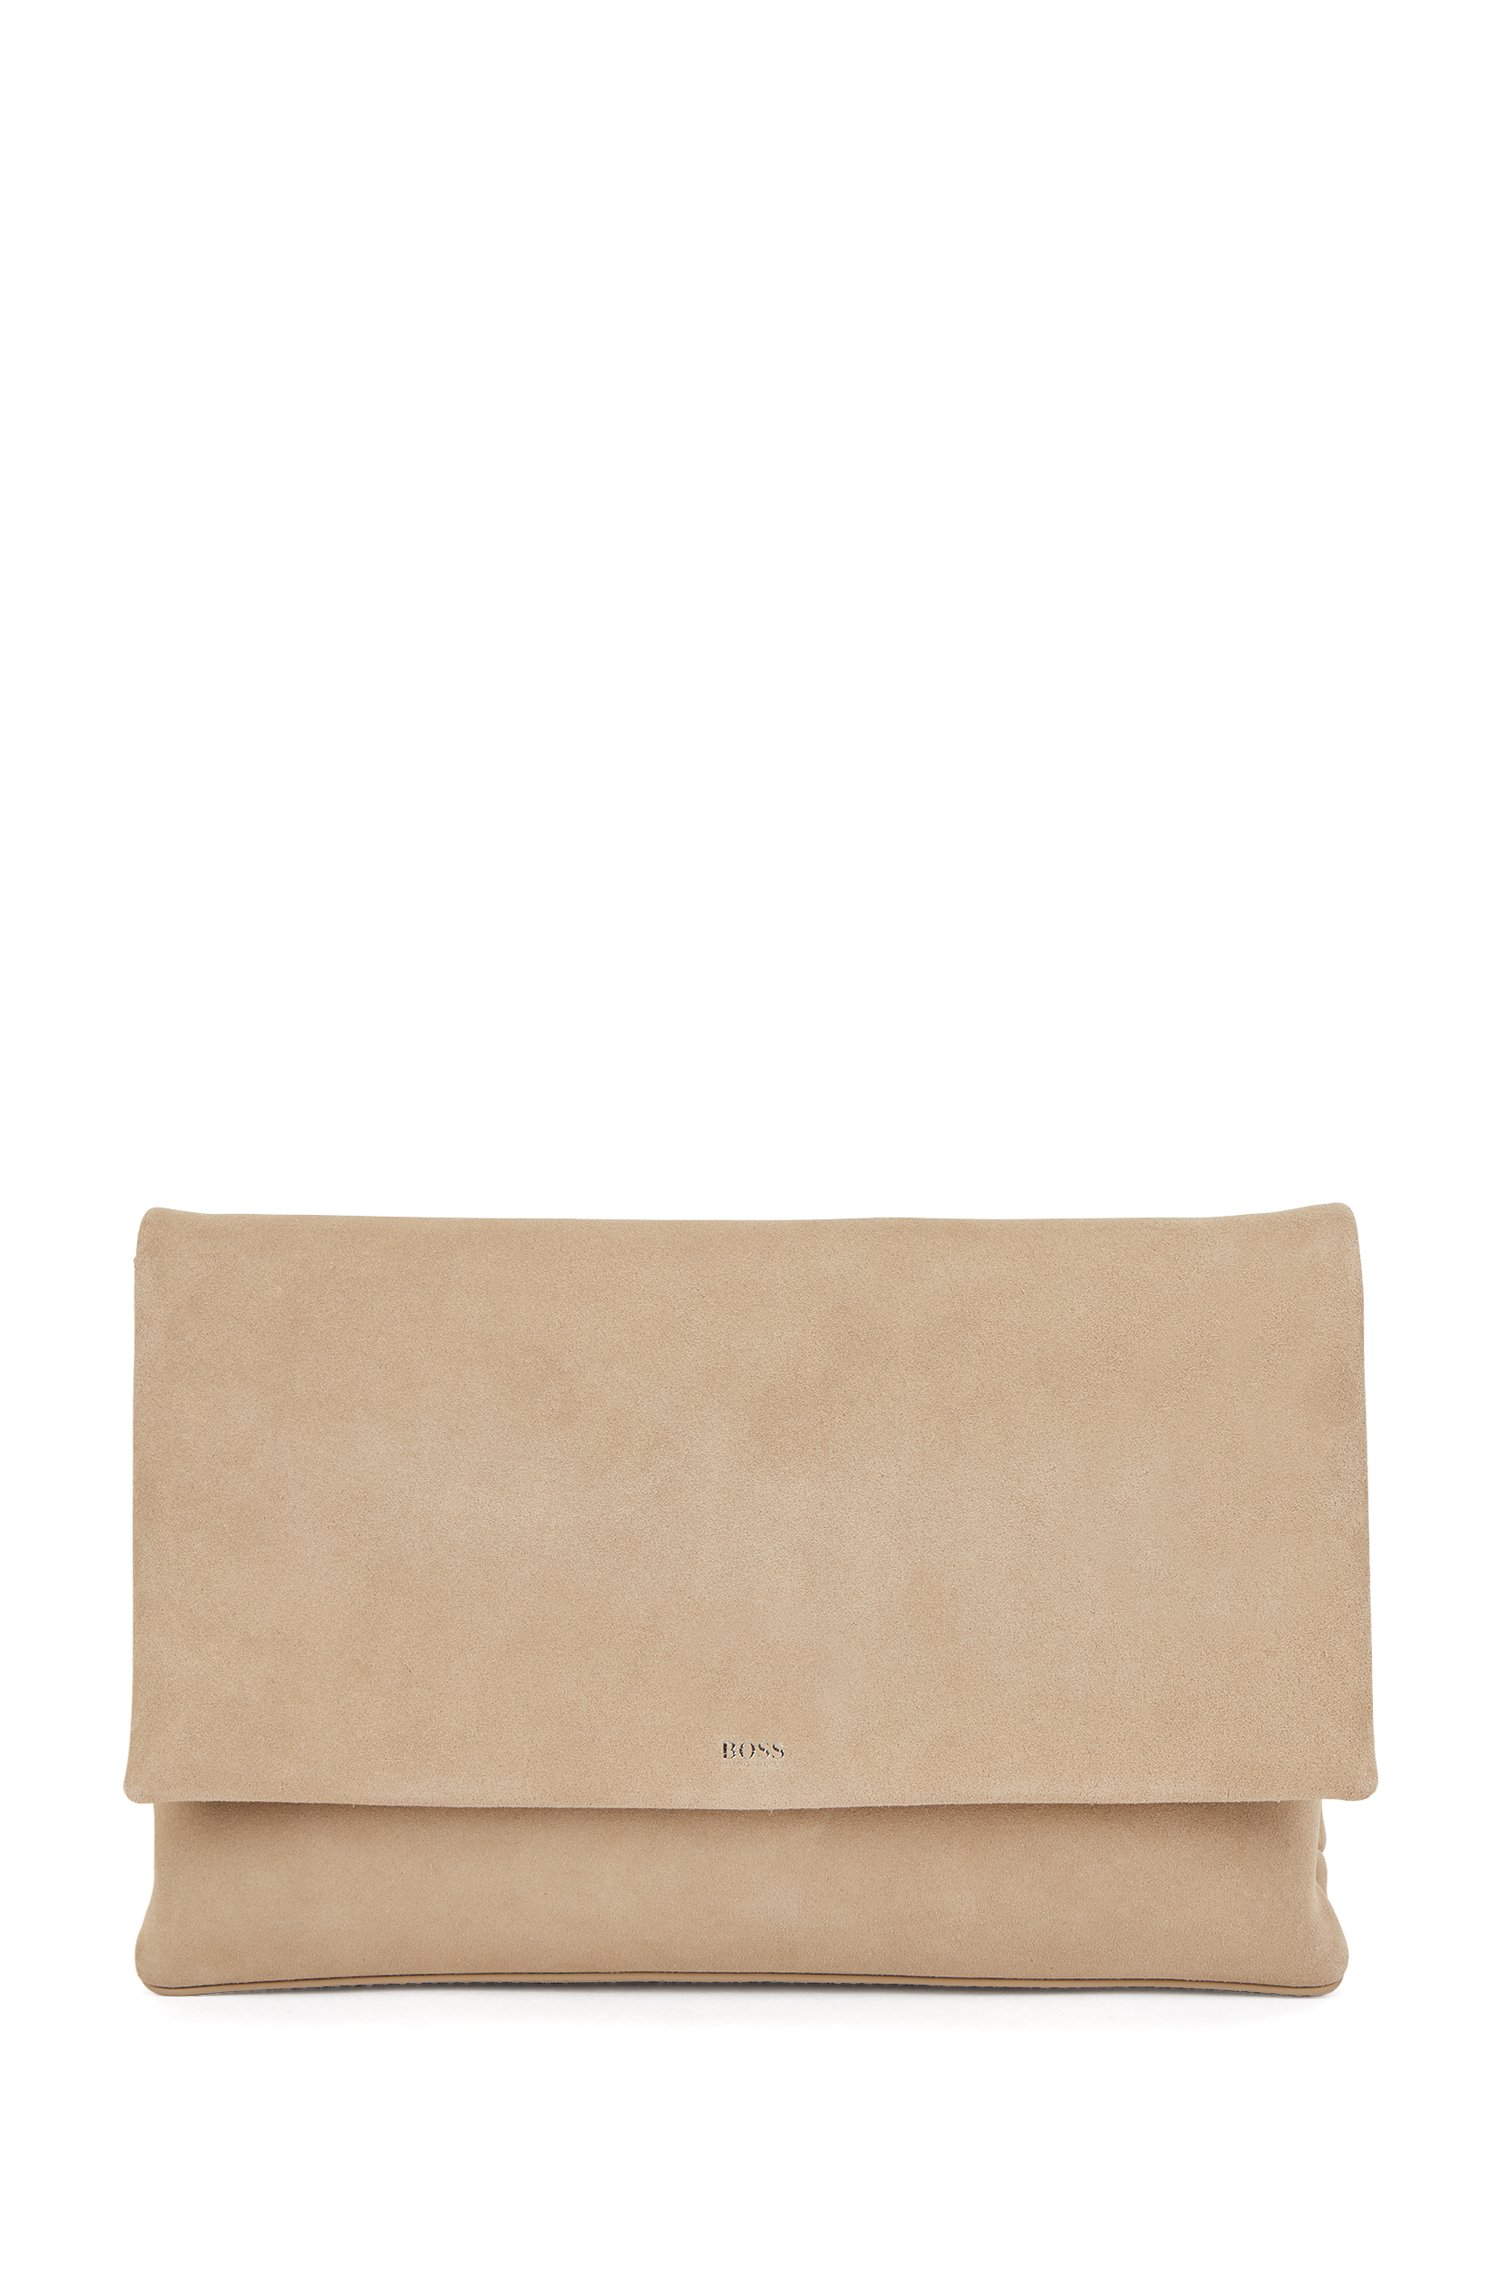 Logo clutch bag in soft suede with magnetic closure, Beige